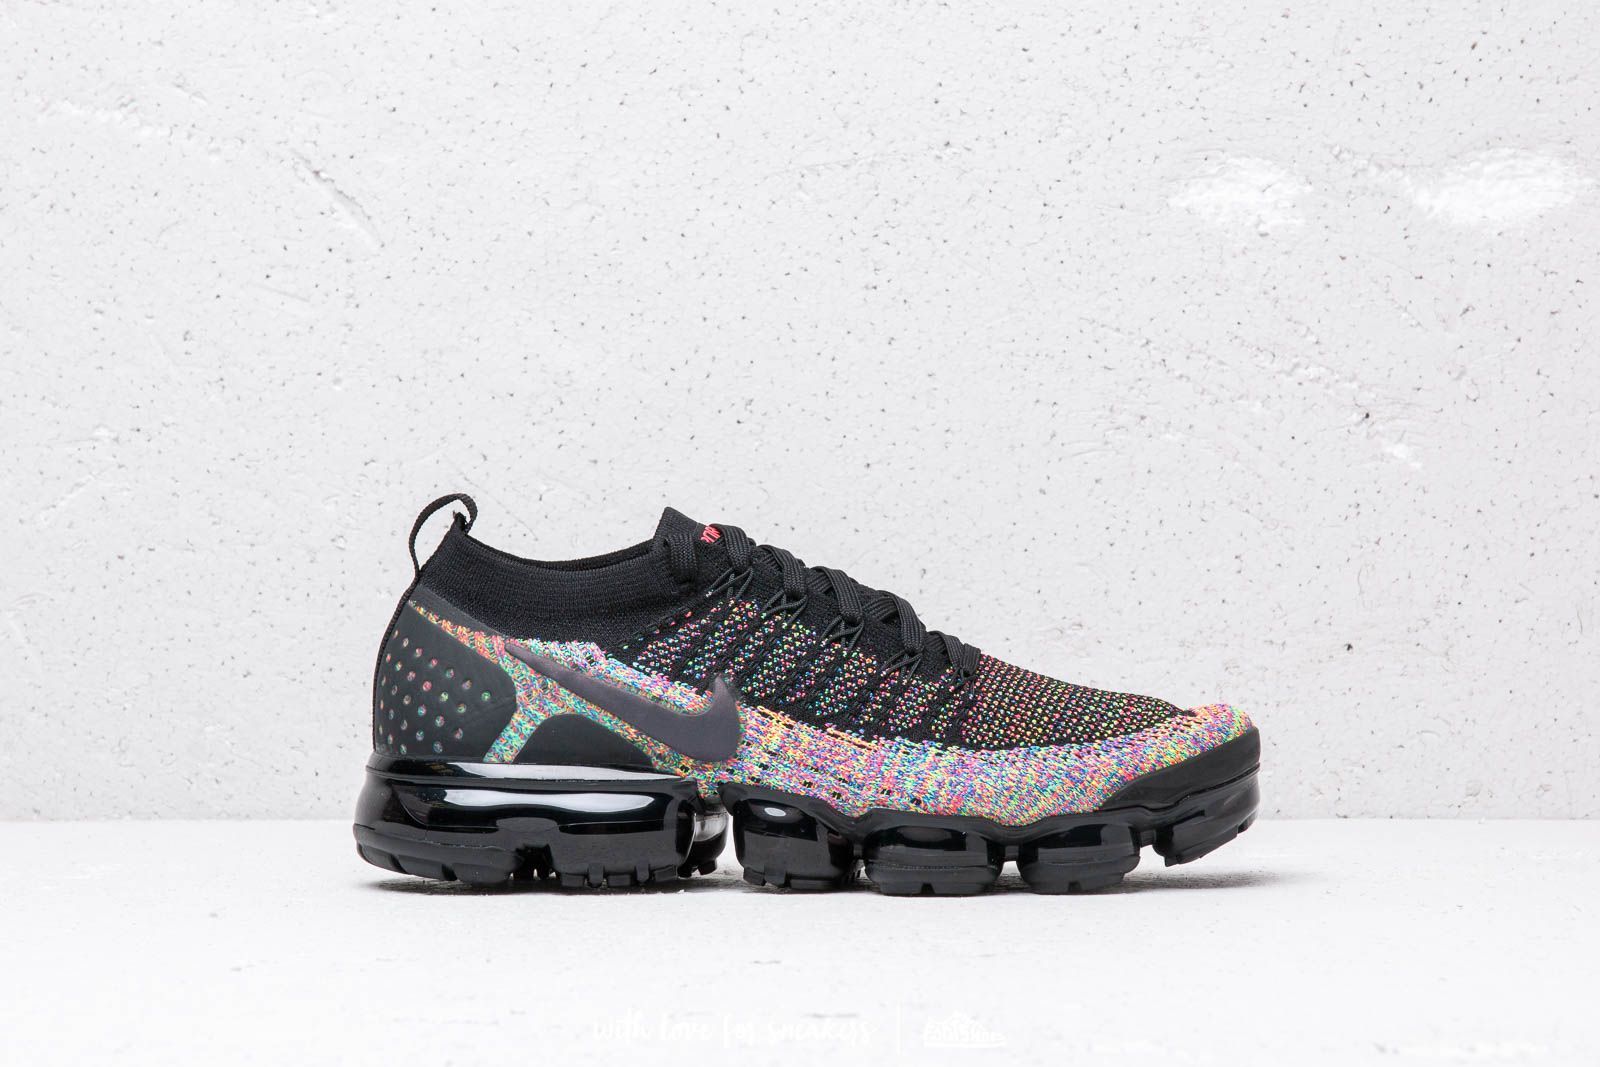 89d635fb5fa4f Nike Air Vapormax Flyknit 2 Black  Black-Racer Pink-Racer Blue at a